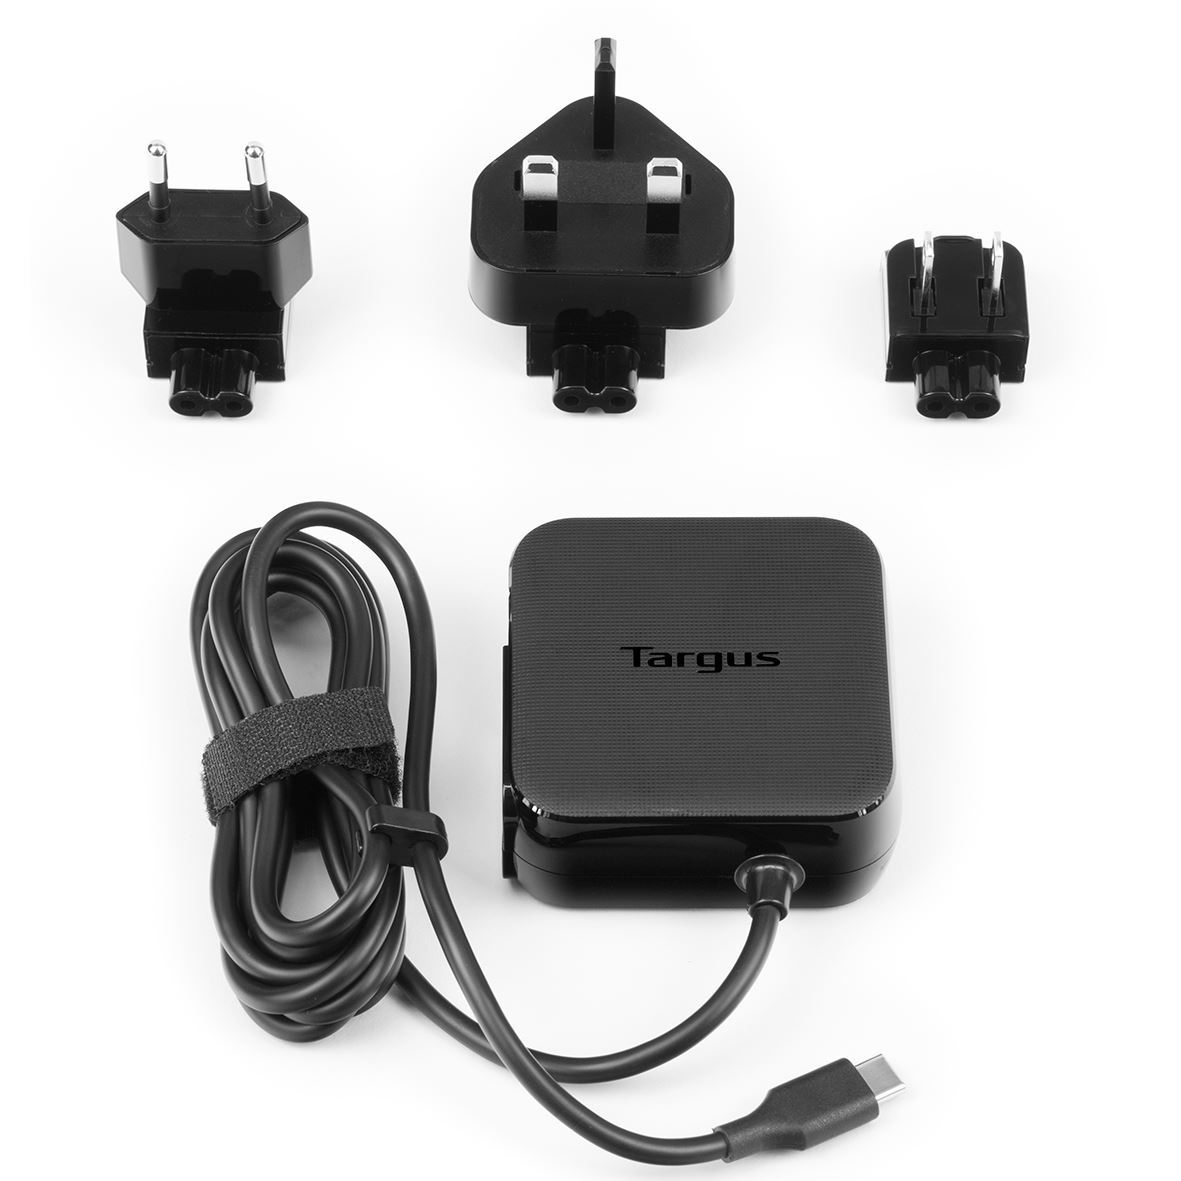 Targus APA95EU Indoor Black mobile device charger